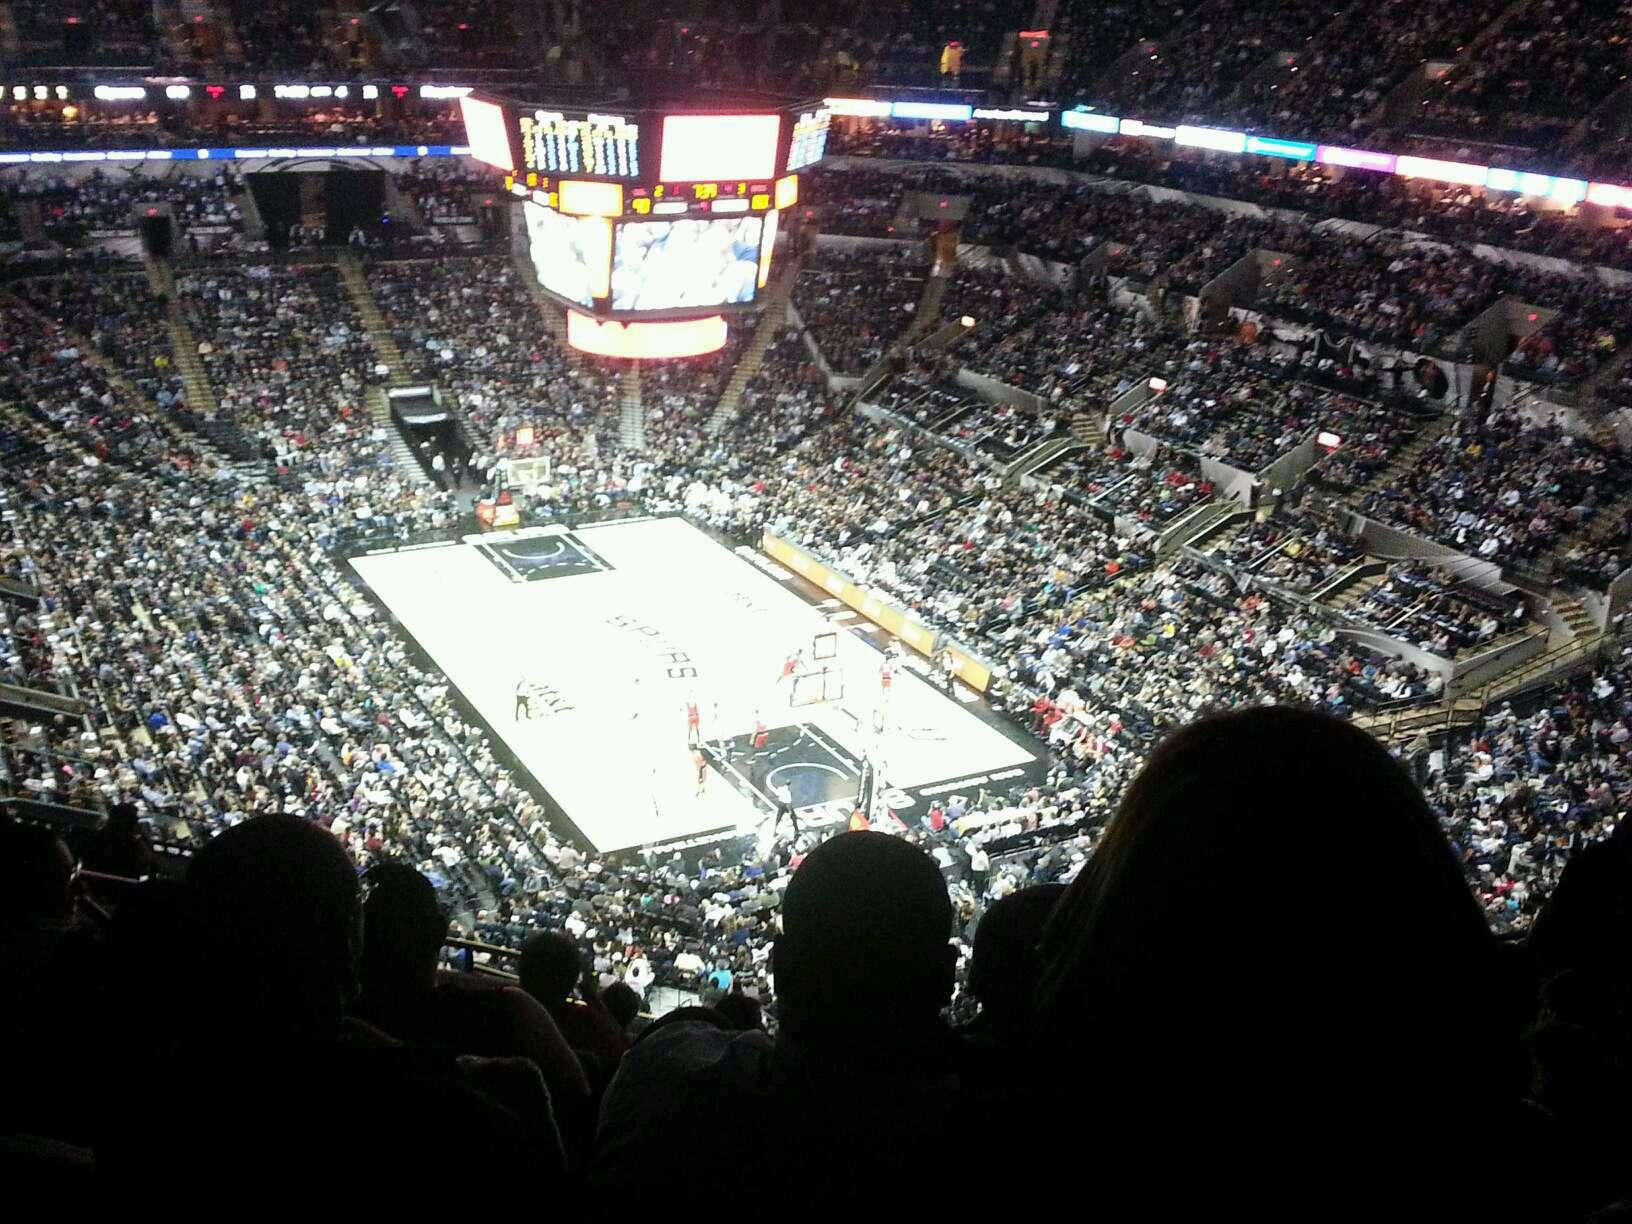 AT&T Center Section 218 Row 13 Seat 13